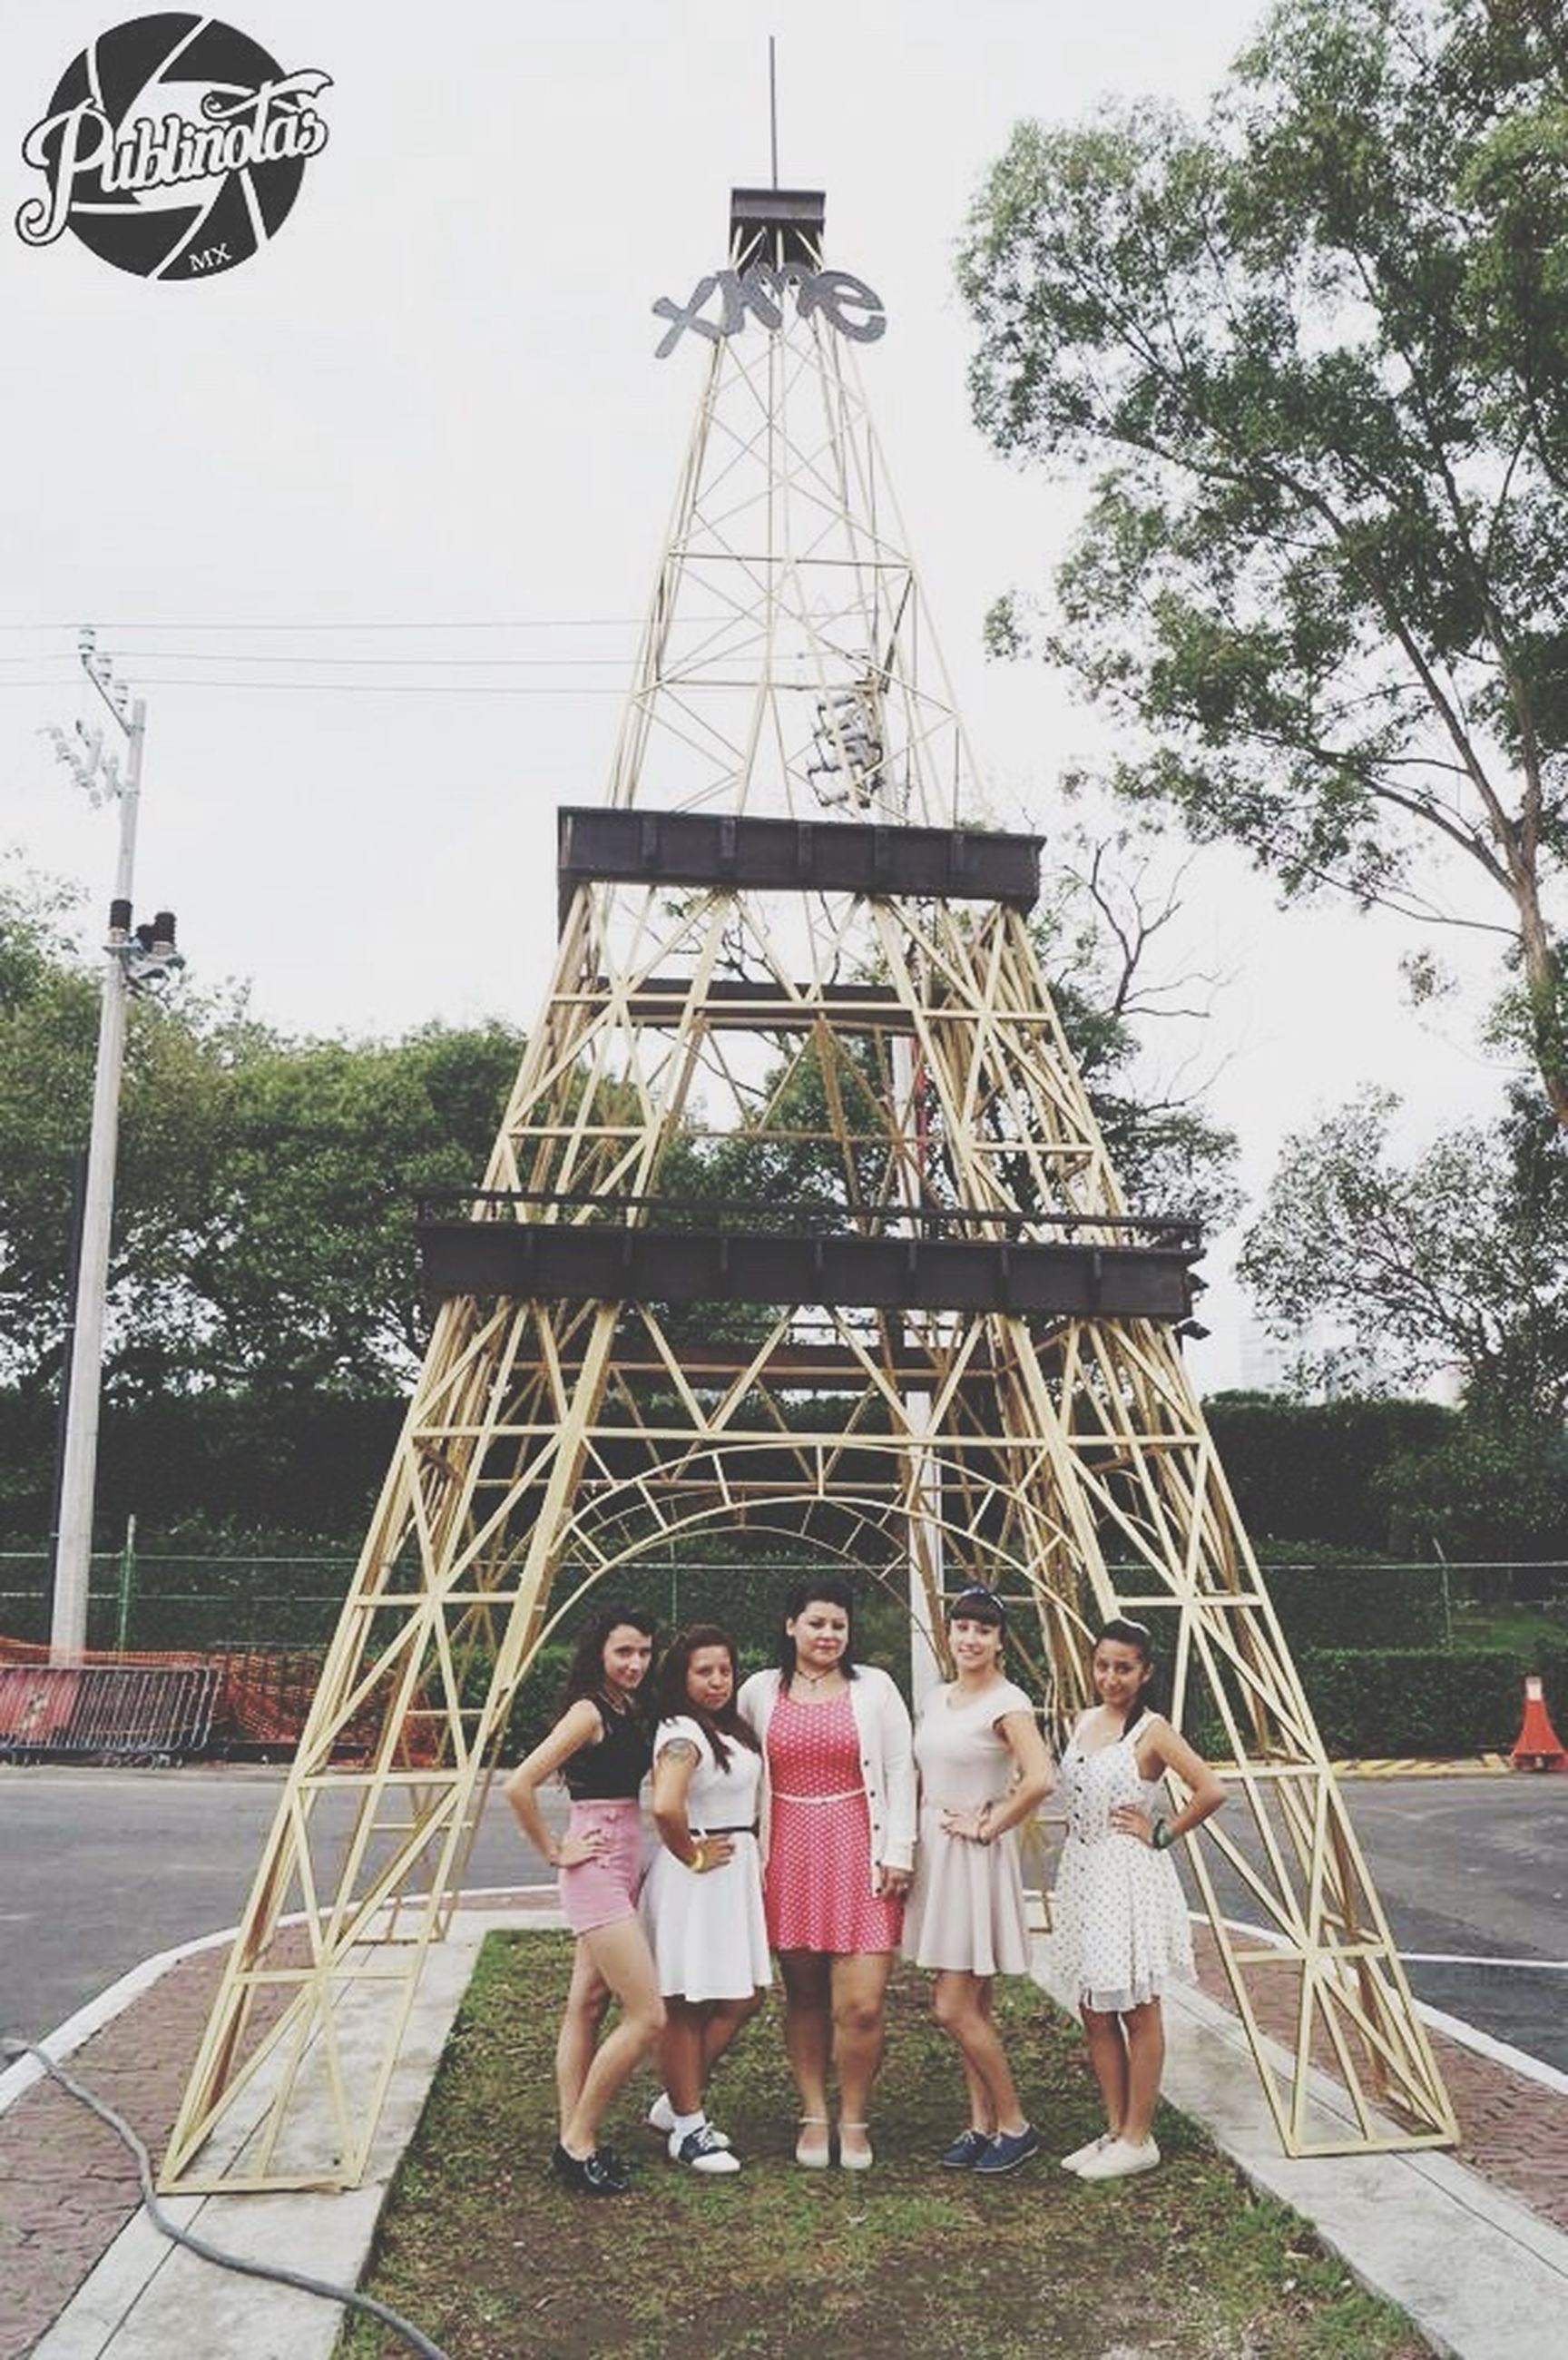 togetherness, childhood, person, girls, tower, tree, casual clothing, day, eiffel tower, relaxation, outdoors, culture, single mother, sky, amusement park